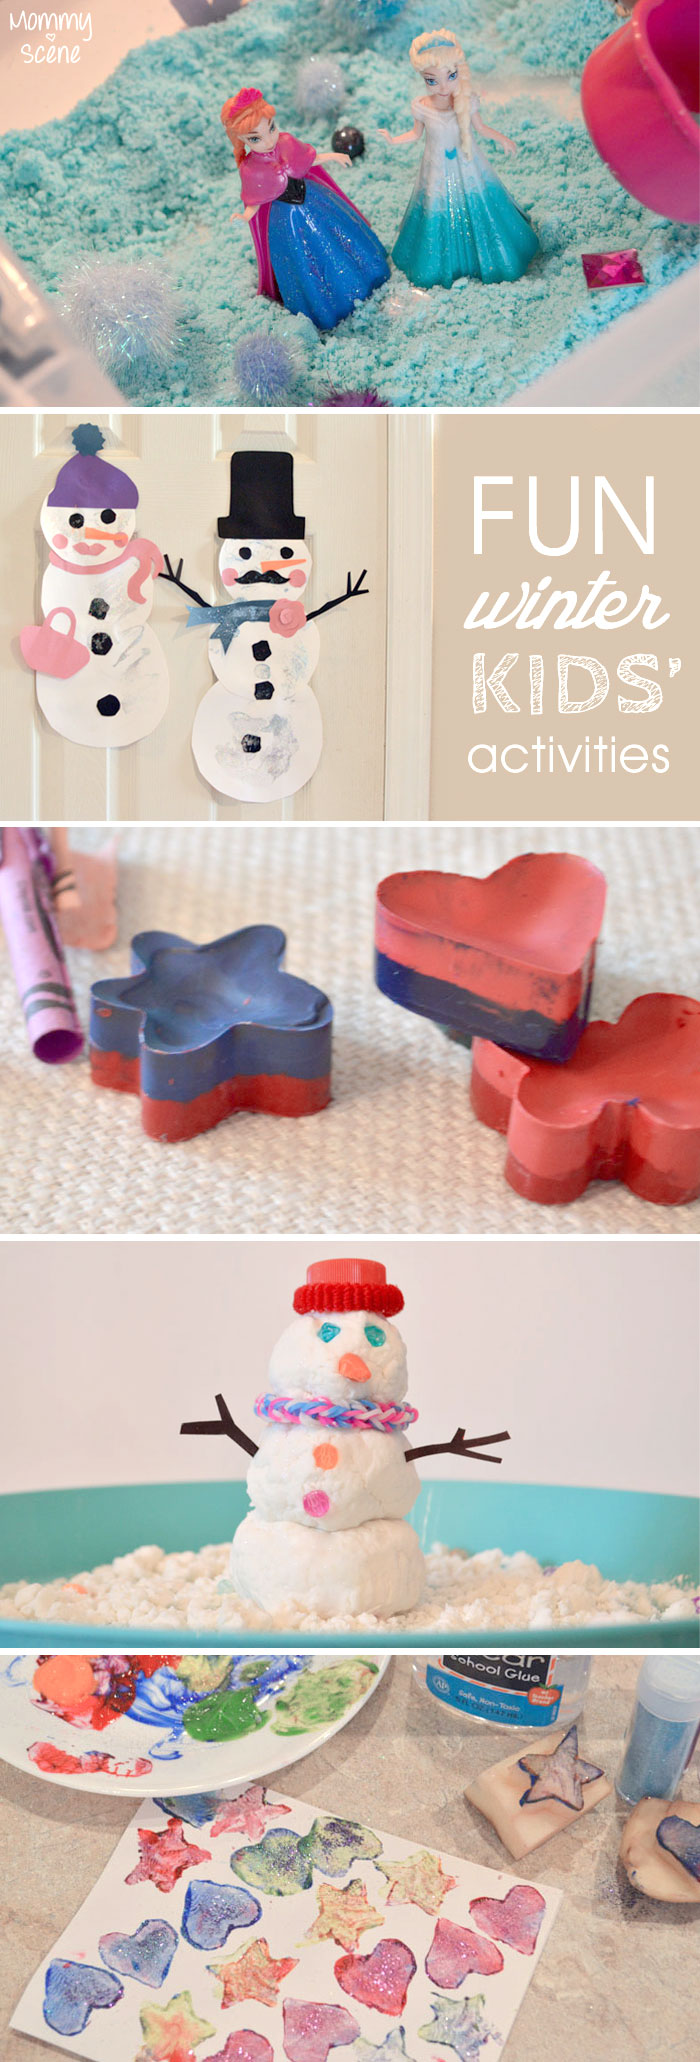 Fun winter kids activities - Mommy Scene